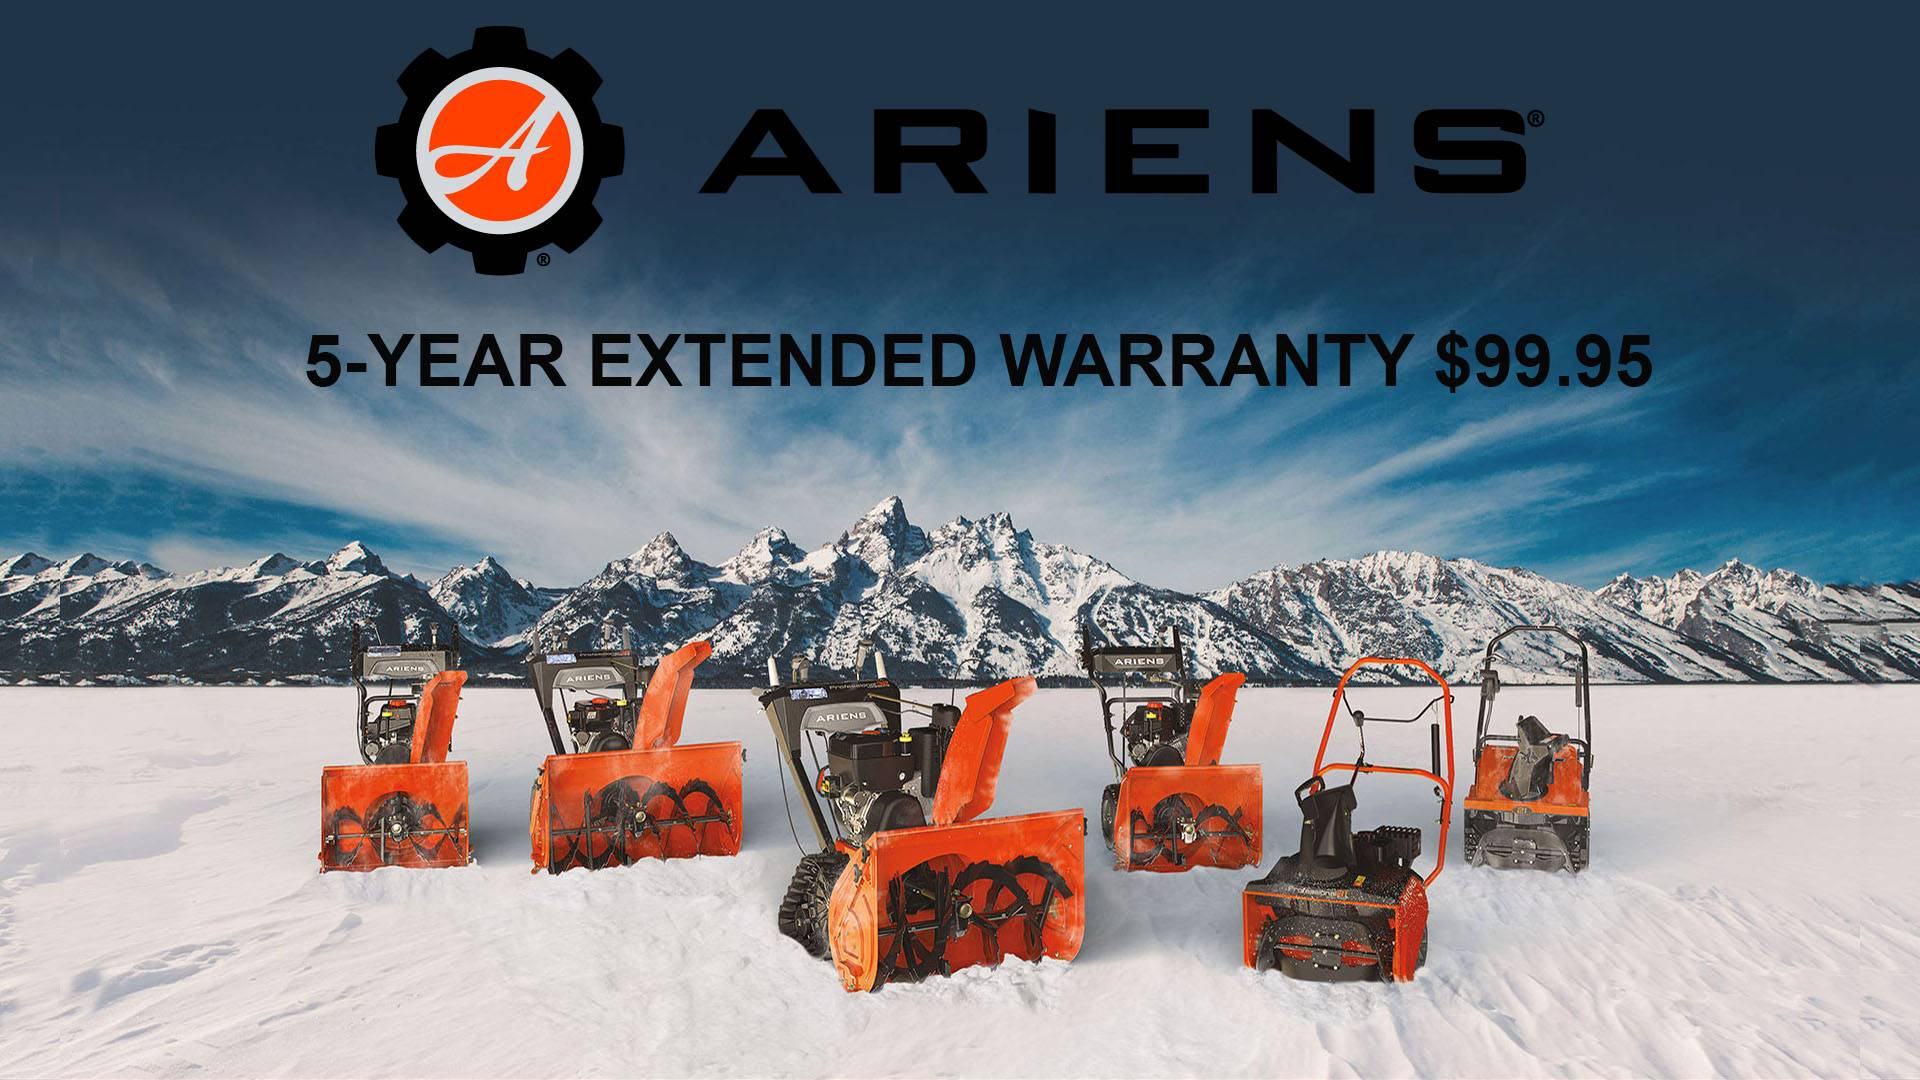 Ariens - 5-Year Extended Warranty $99.95